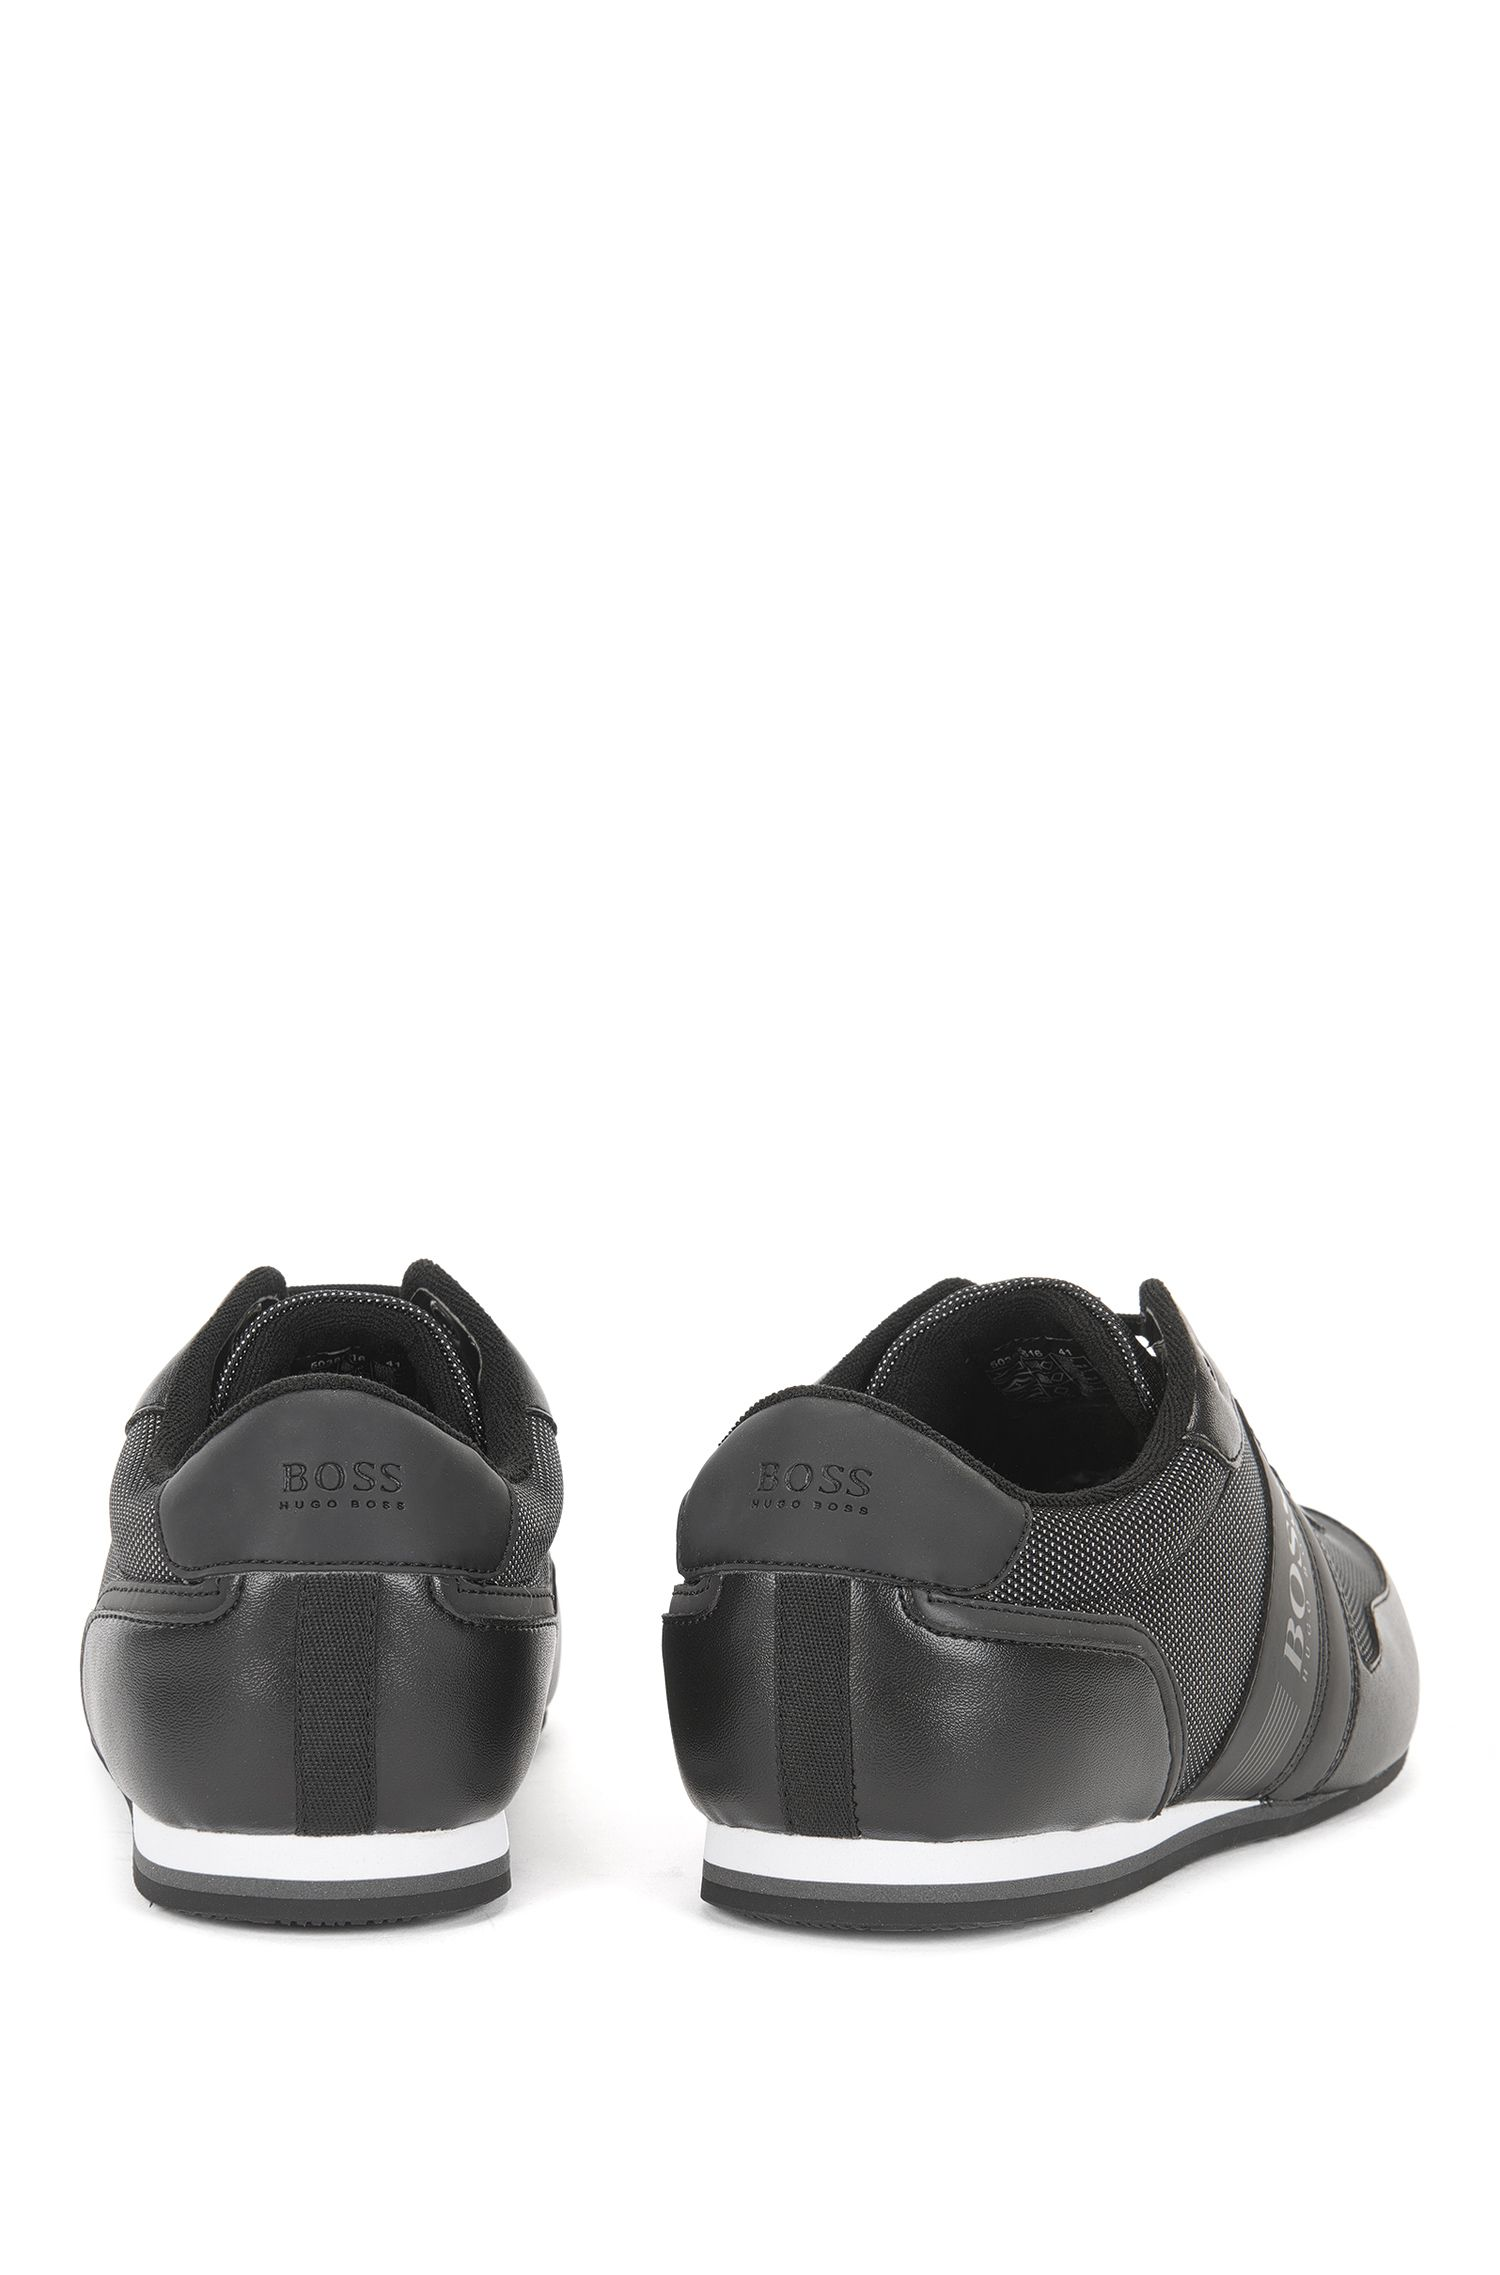 Low-profile trainers with reflective uppers